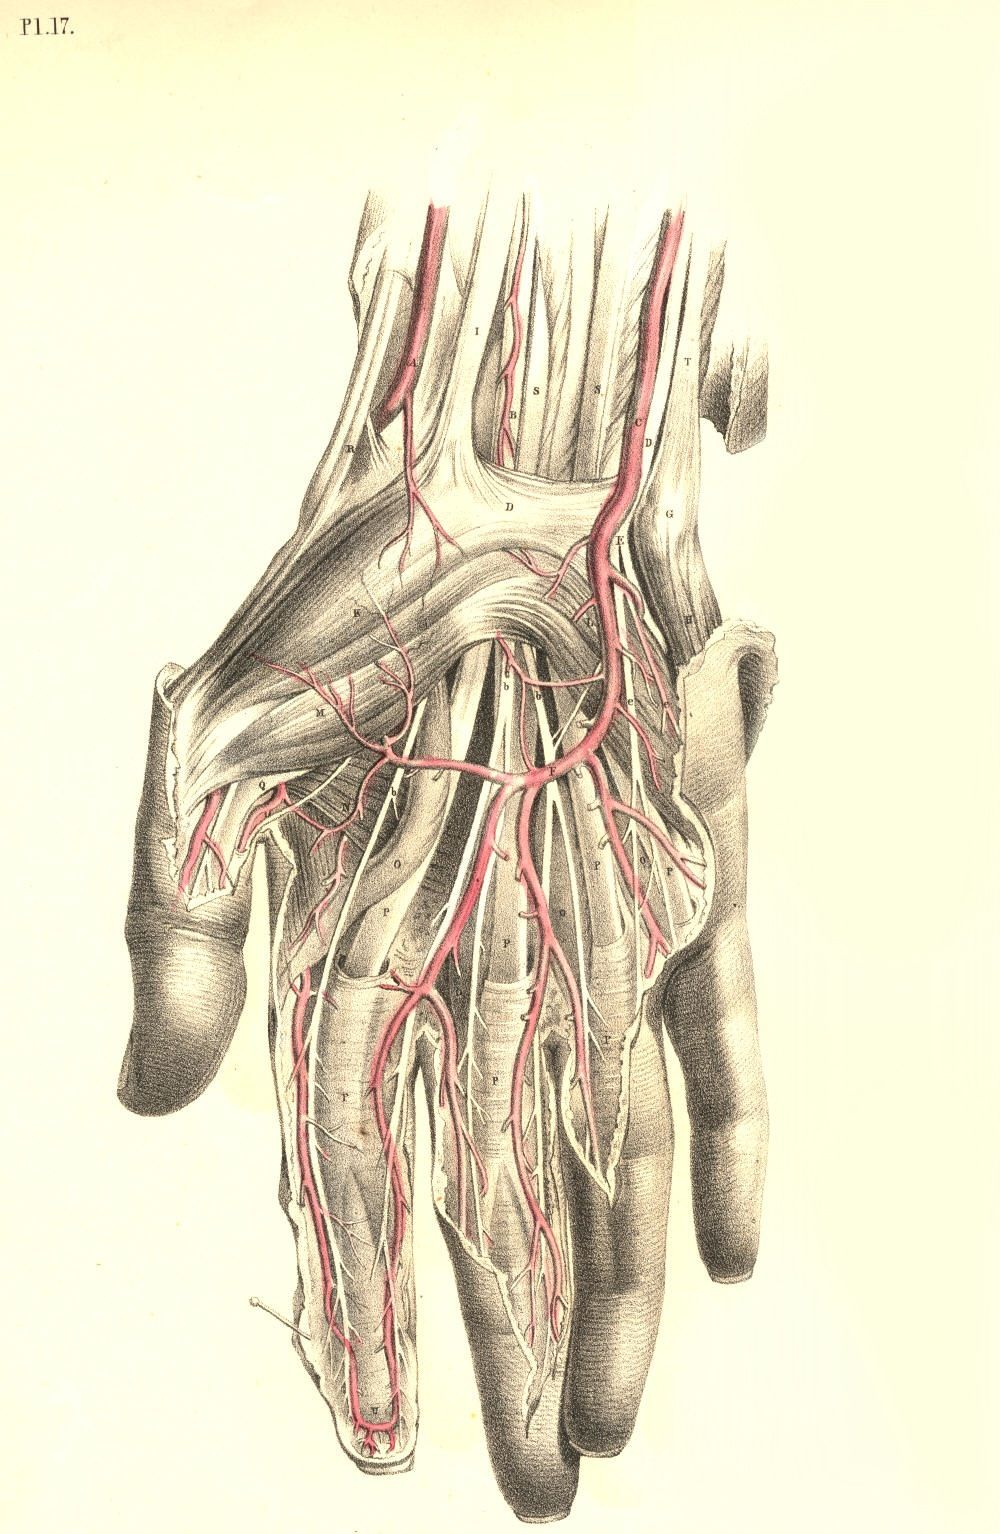 Plate 17 Surgical Dissection Of The Wrist And Hand From Surgical